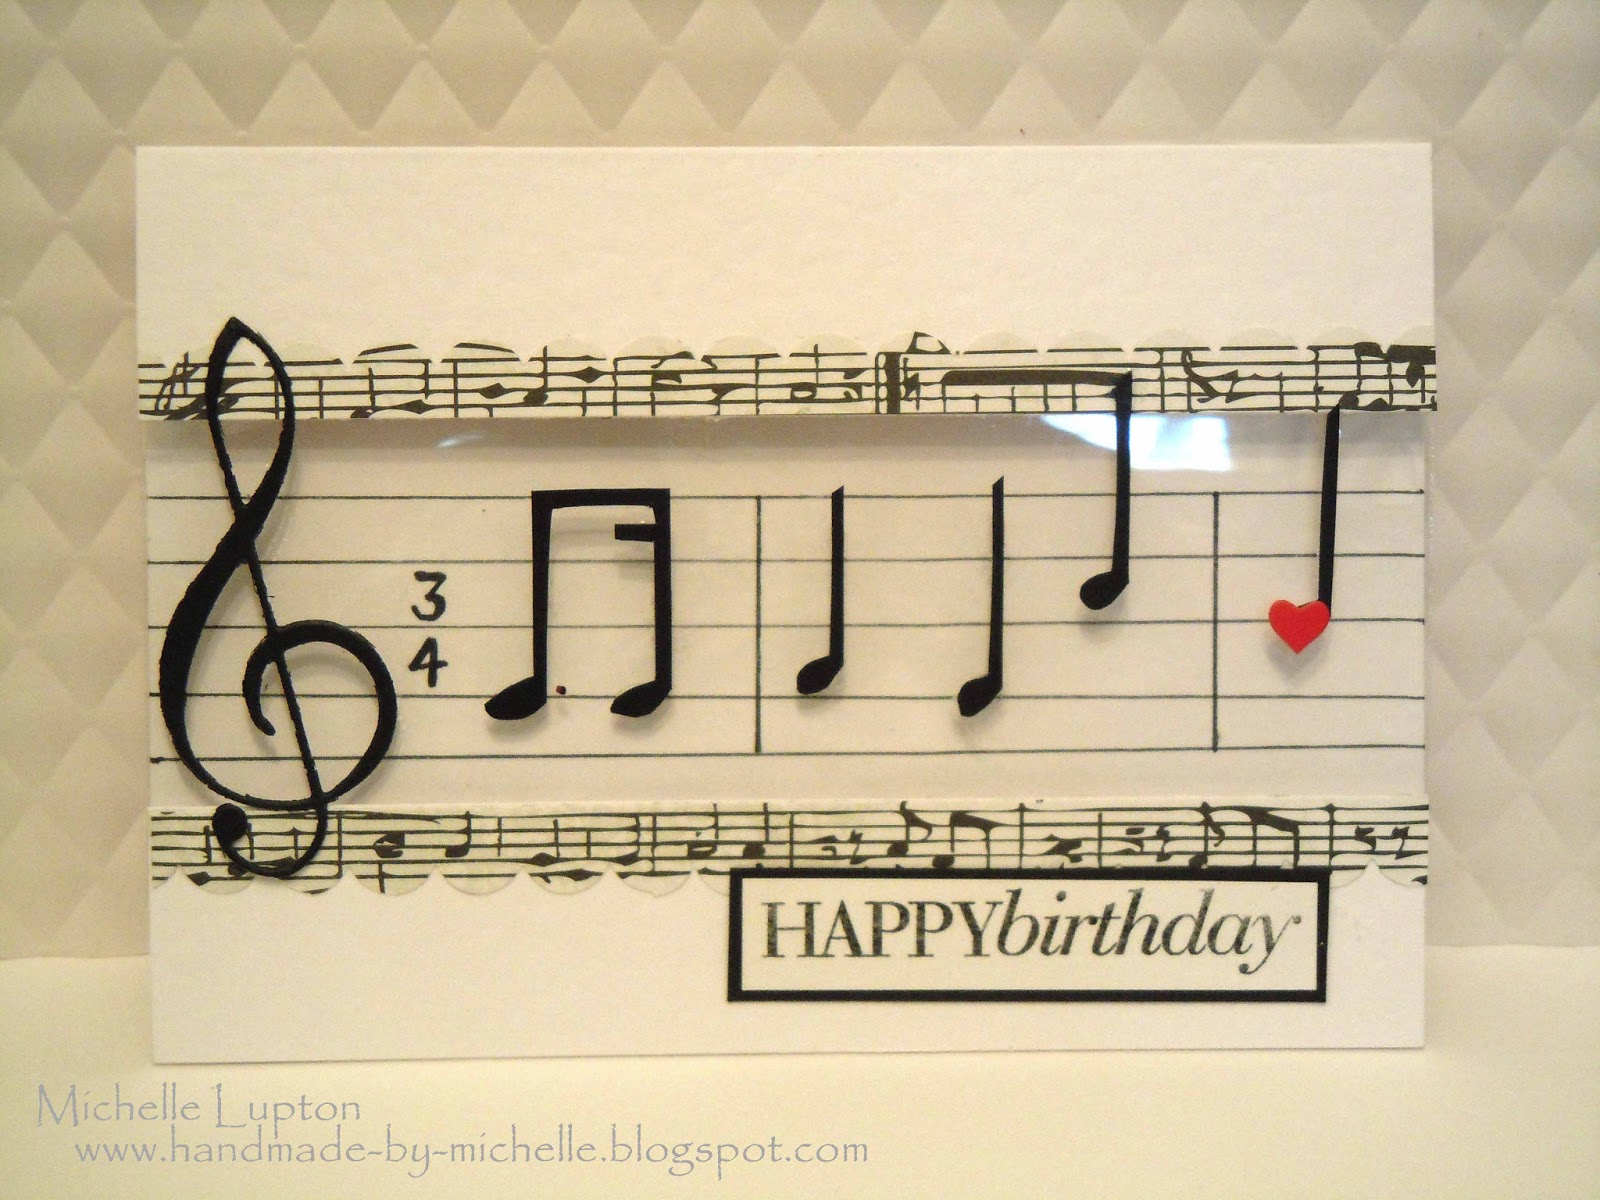 Happy Birthday Greetings Card With Music